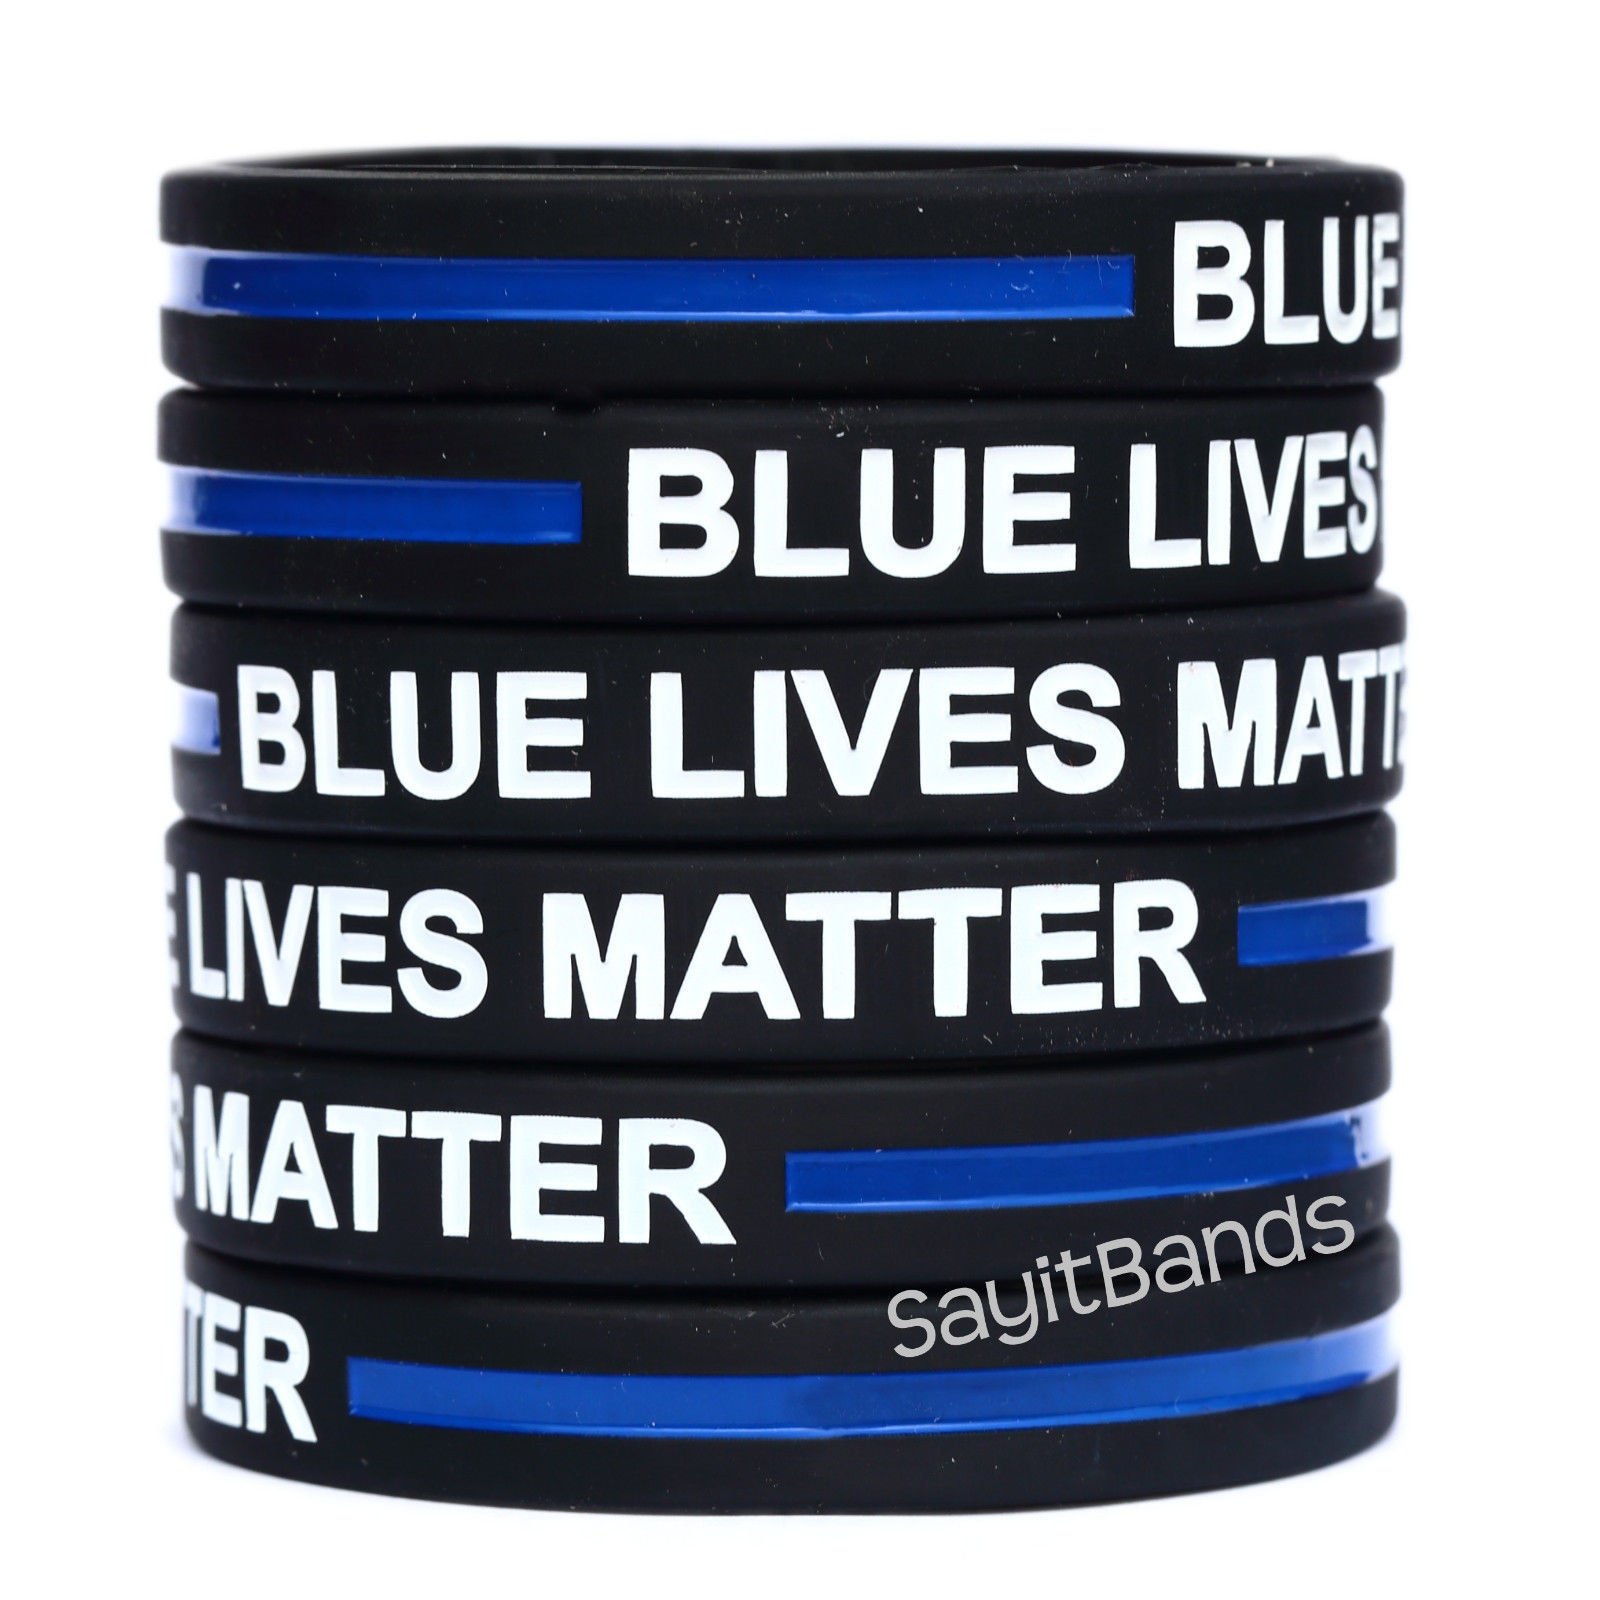 Primary image for Fifty (50) BLUE LIVES MATTER Thin Blue Line Wristbands - Show Police Support